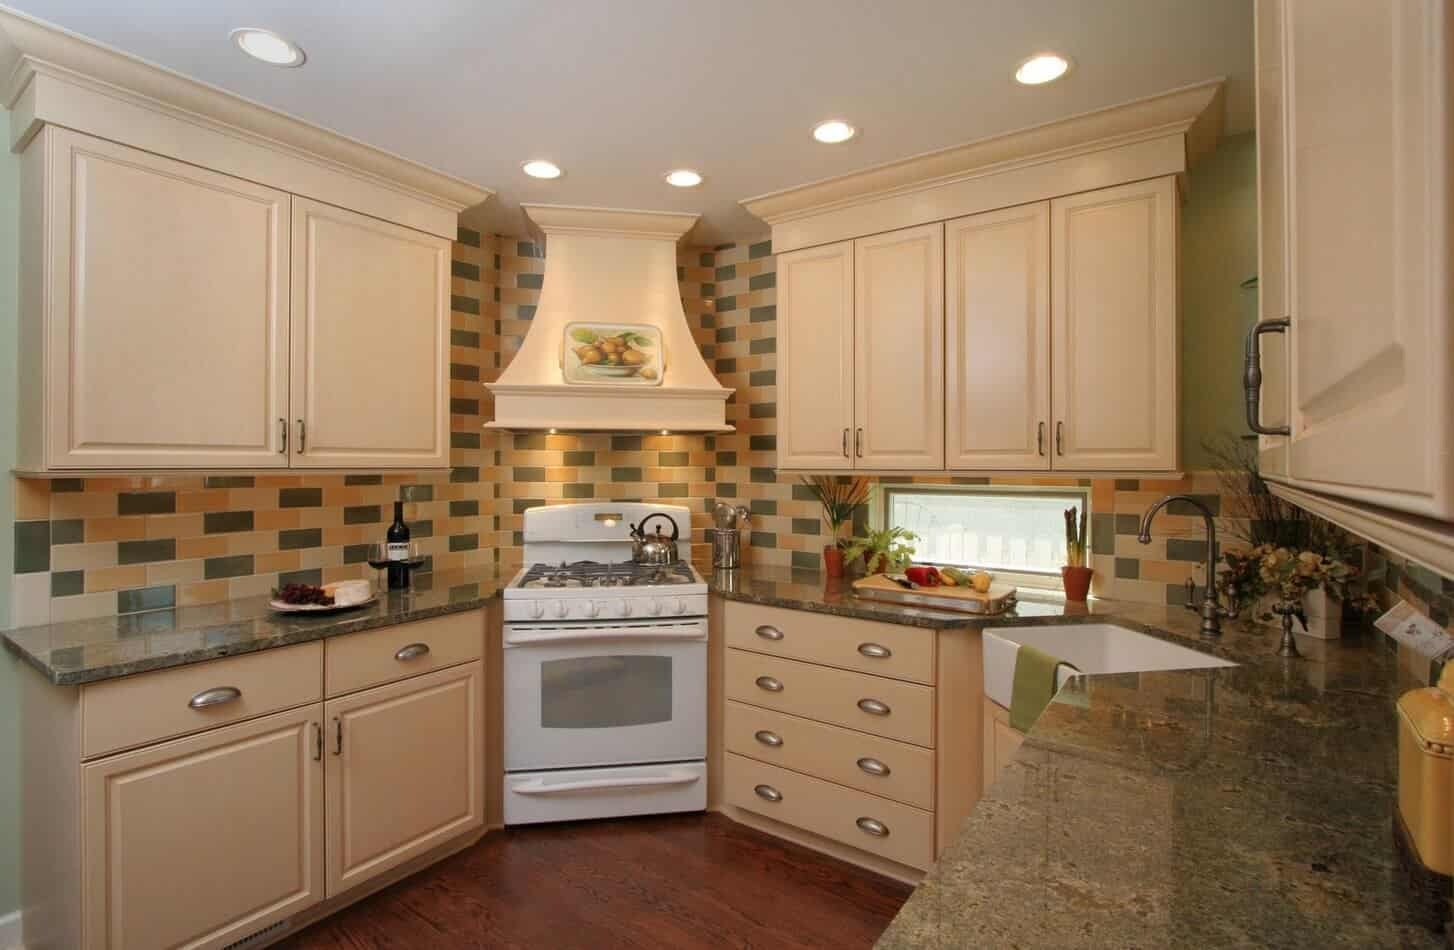 Marvelous kitchen styled with an eye-catching subway tile backsplash that goes well with the cream cabinetry and white range.